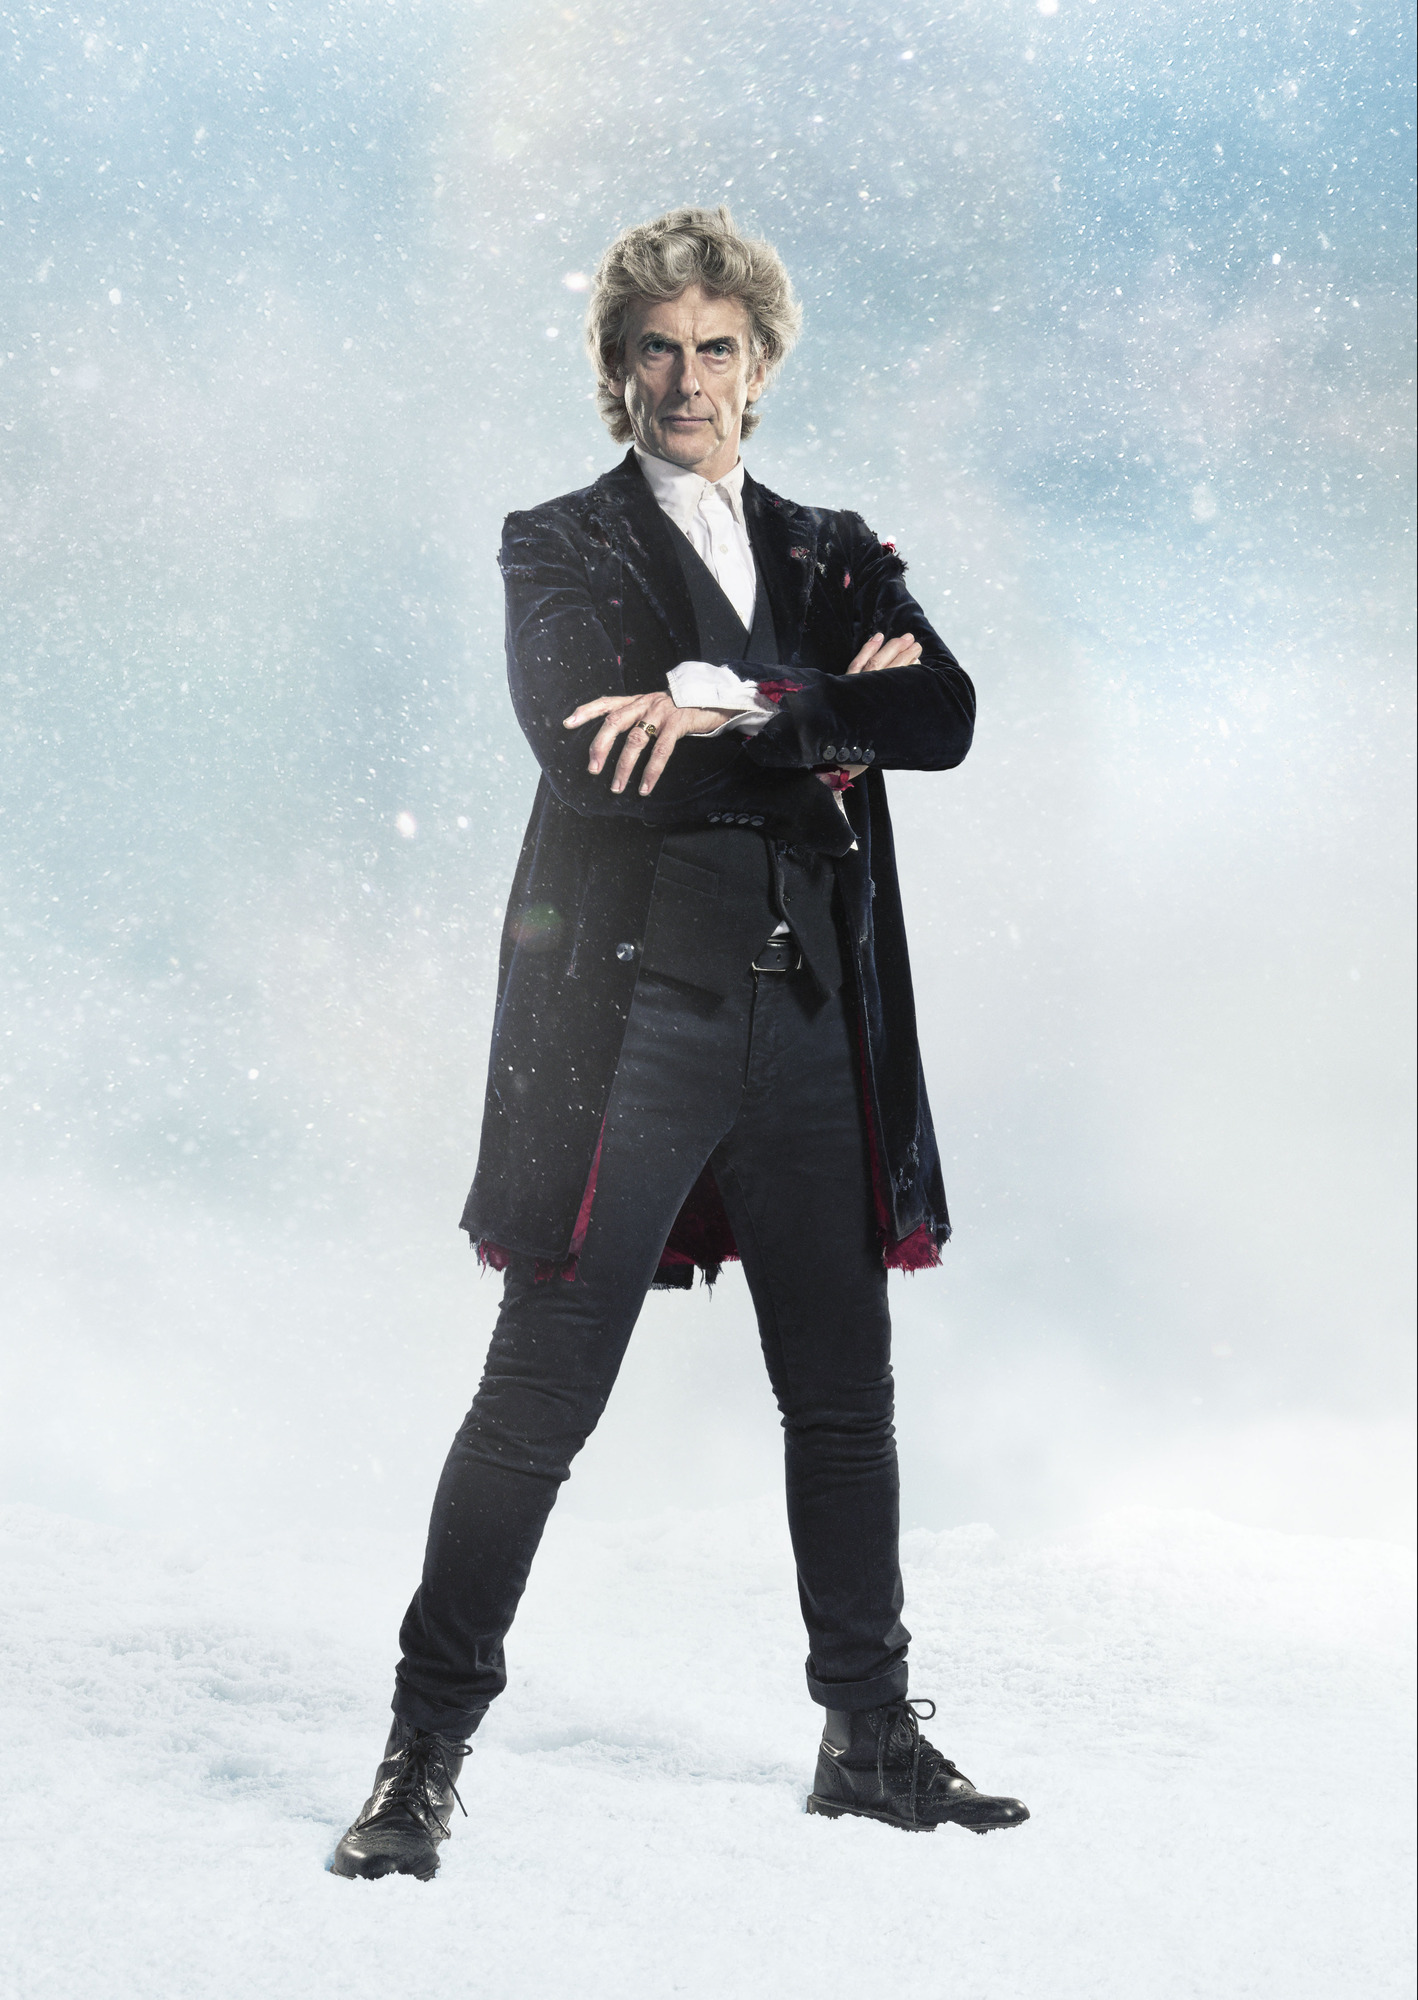 Doctor Who Christmas Special 2017 Twice Upon A Time Cast